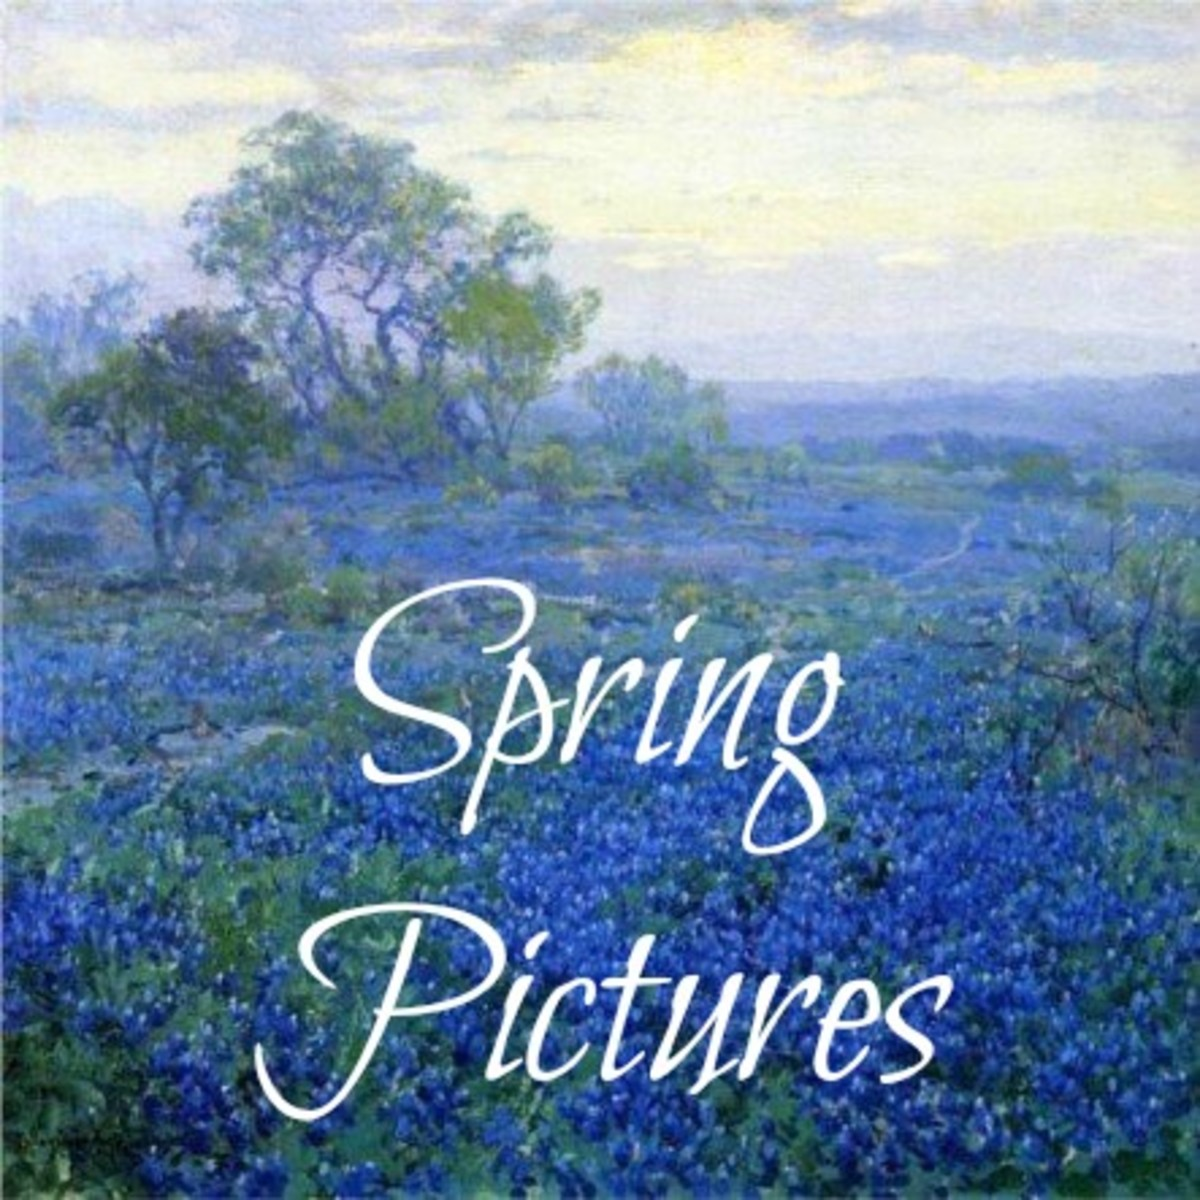 SPRING PICTURES: 200 Best Pictures, Free Images and Big Photos